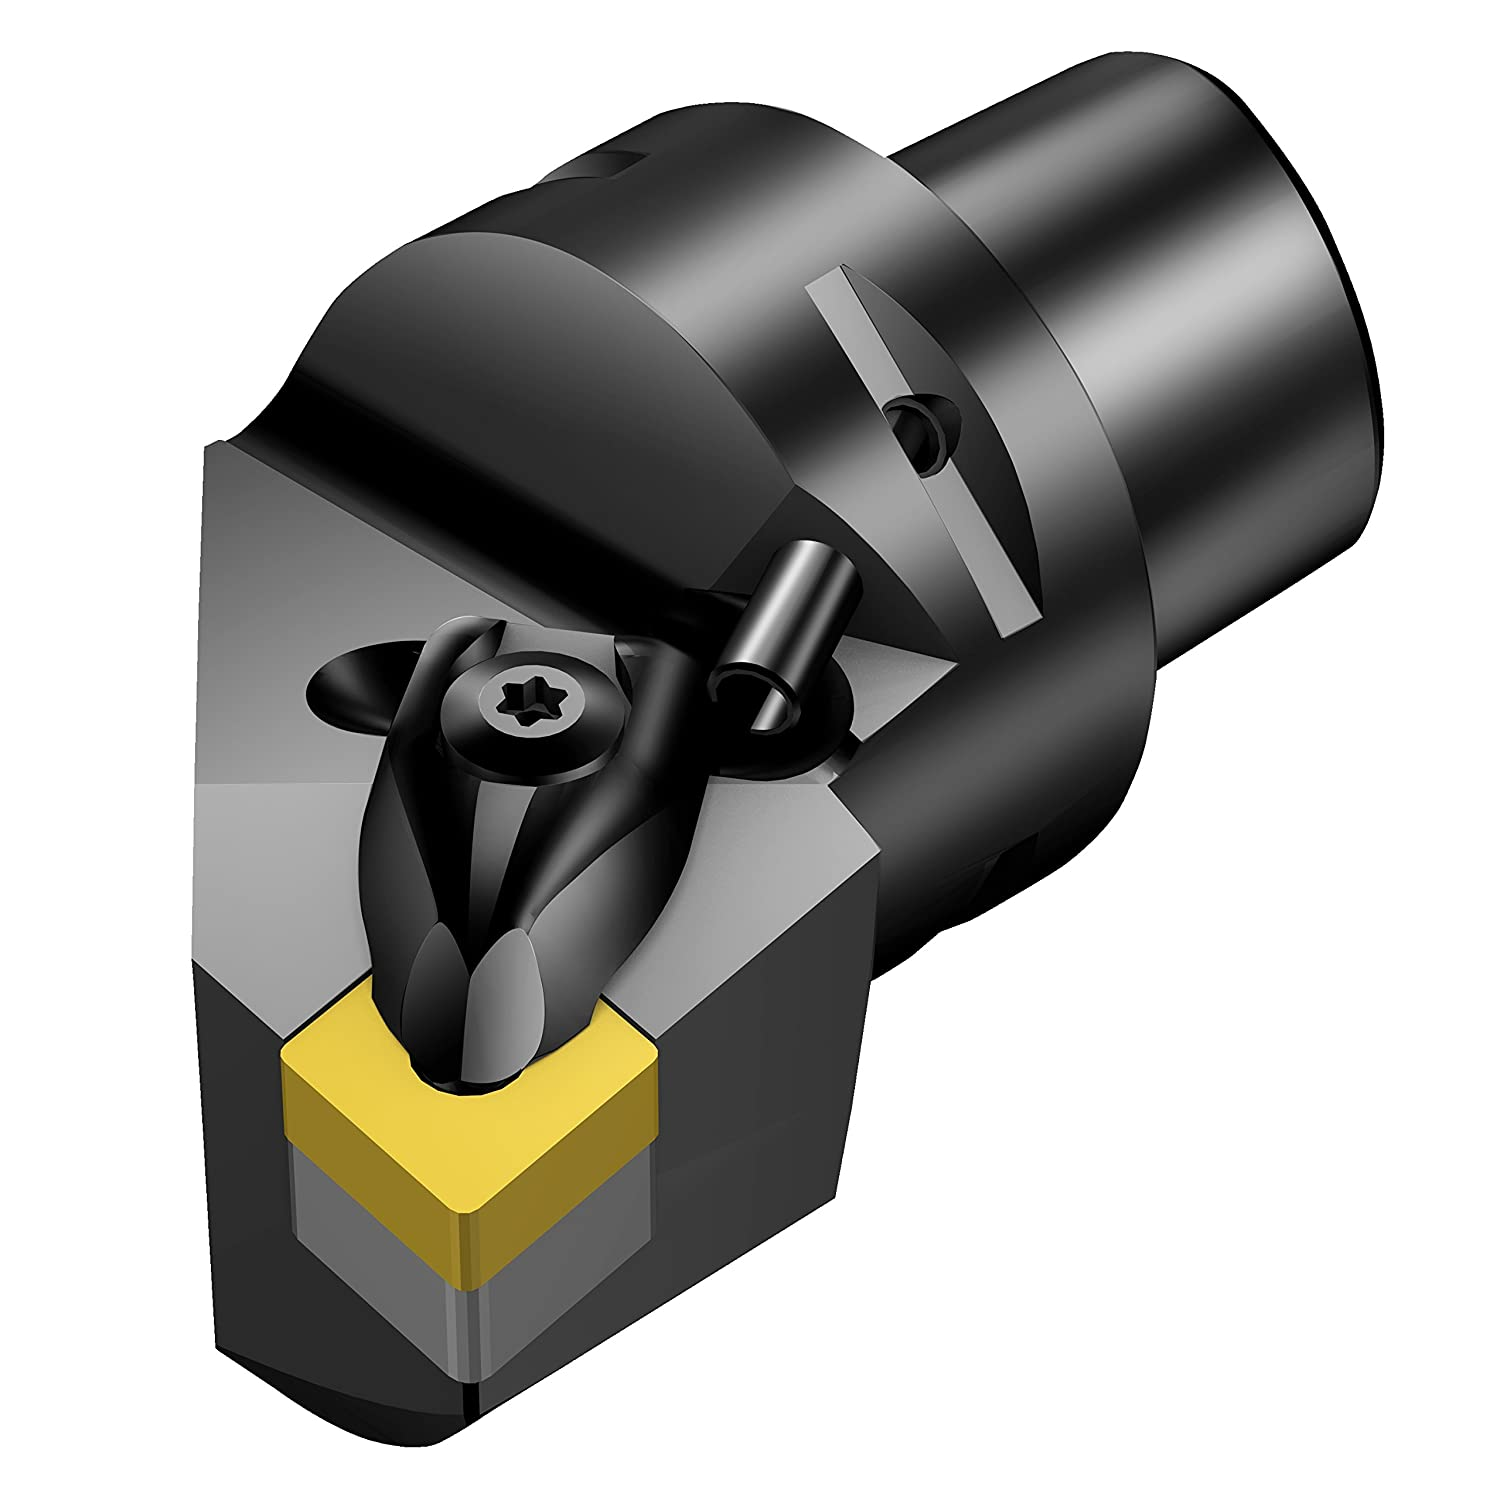 Right Hand CNMG 19 06 12 Master Insert 35 mm Shank Dia. Sandvik Coromant C5-DCLNR-35060-19 T-Max P Cutting Unit for Turning 35 mm Functional Width 60 mm Functional Length Cx-DCLNR//L Tool Style